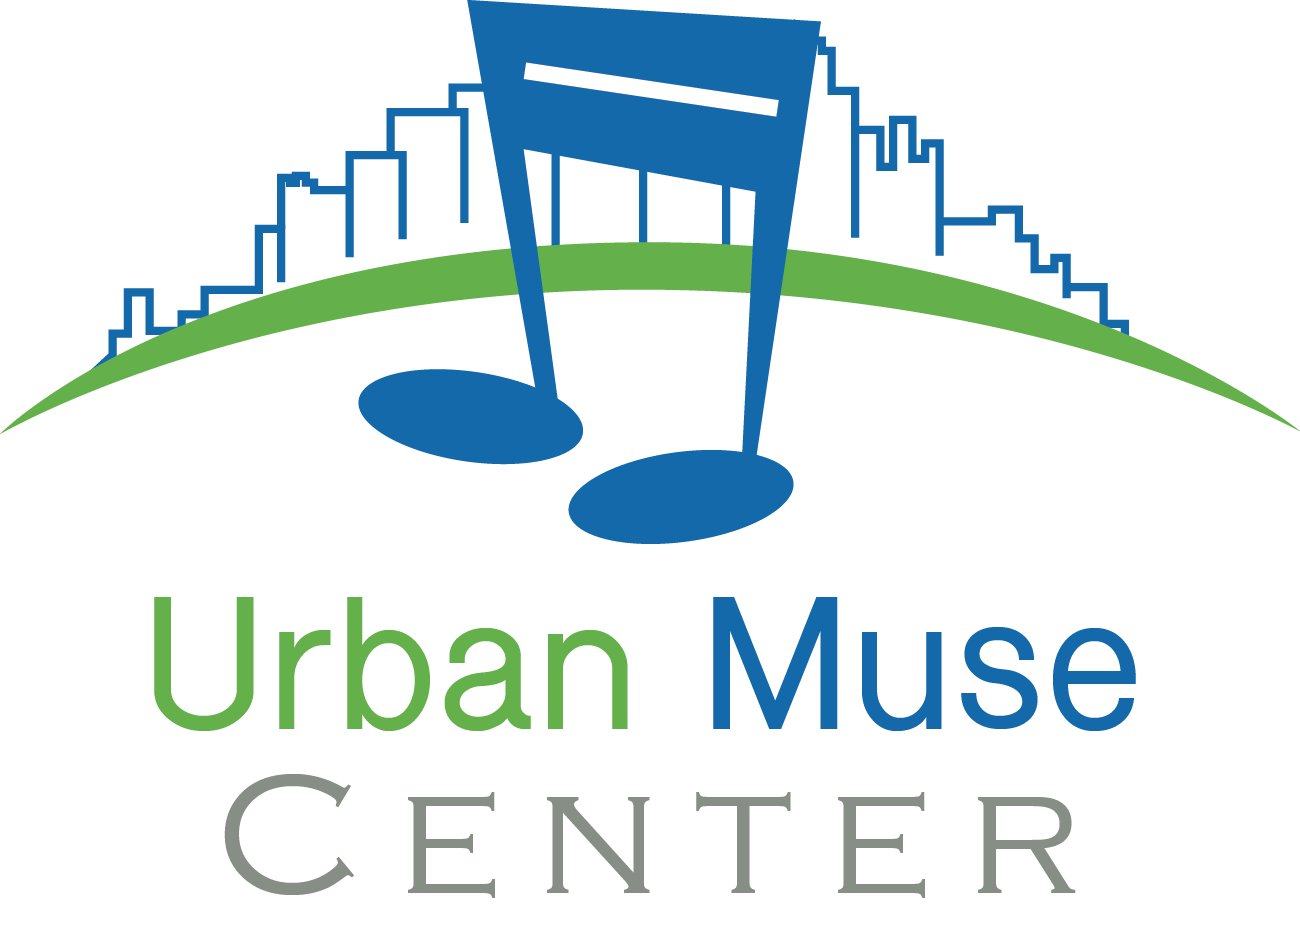 Urban Muse Center